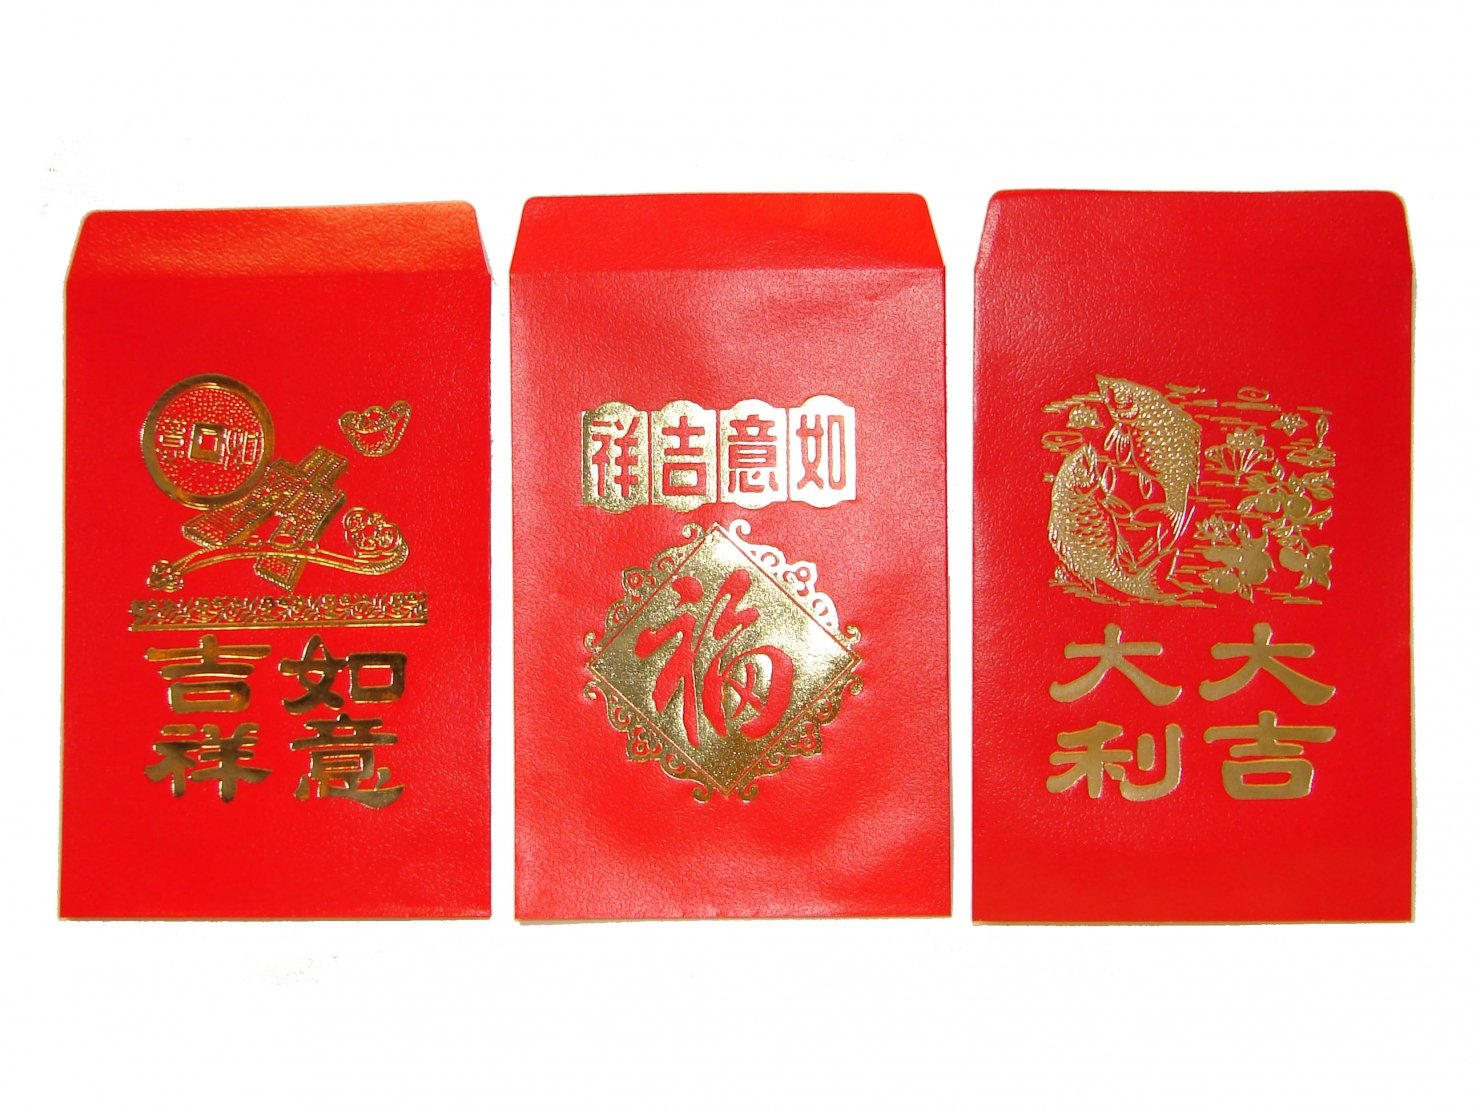 Chinese Classic Red Envelopes for All Occasions Pack of 50 with Three Designs